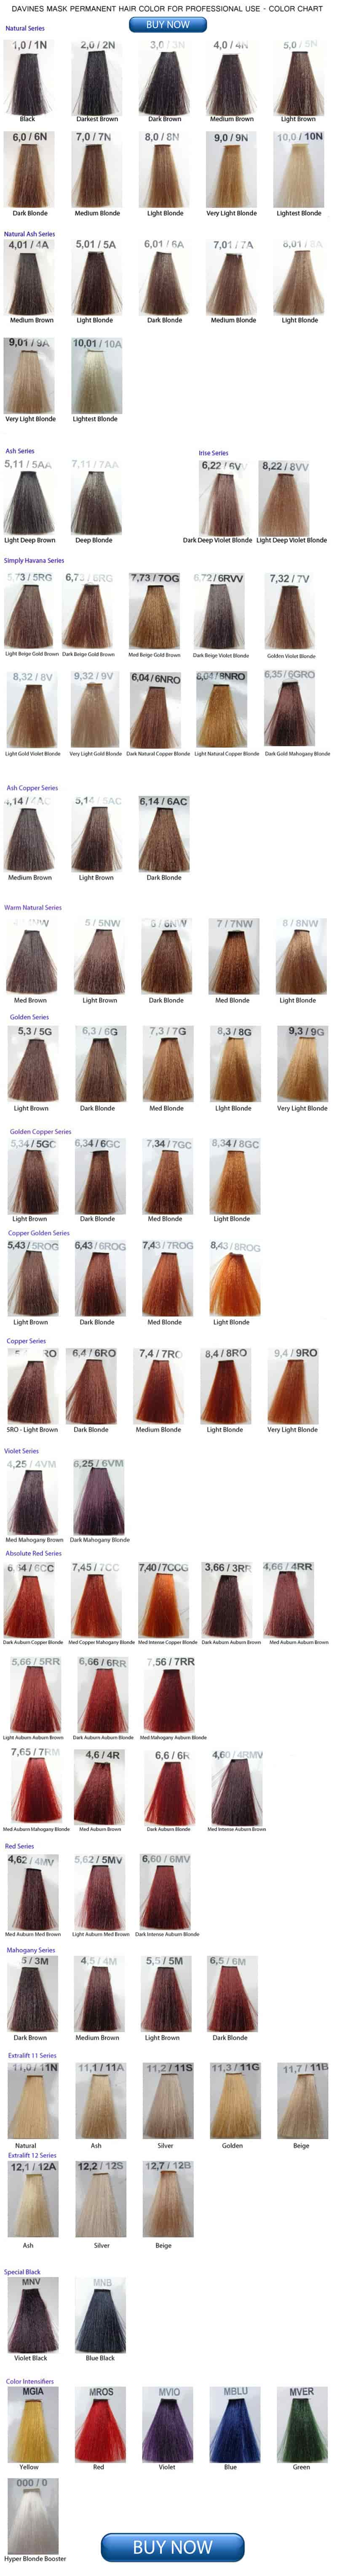 Davines mask permanent hair color swatch book davines mask hair color chart geenschuldenfo Images